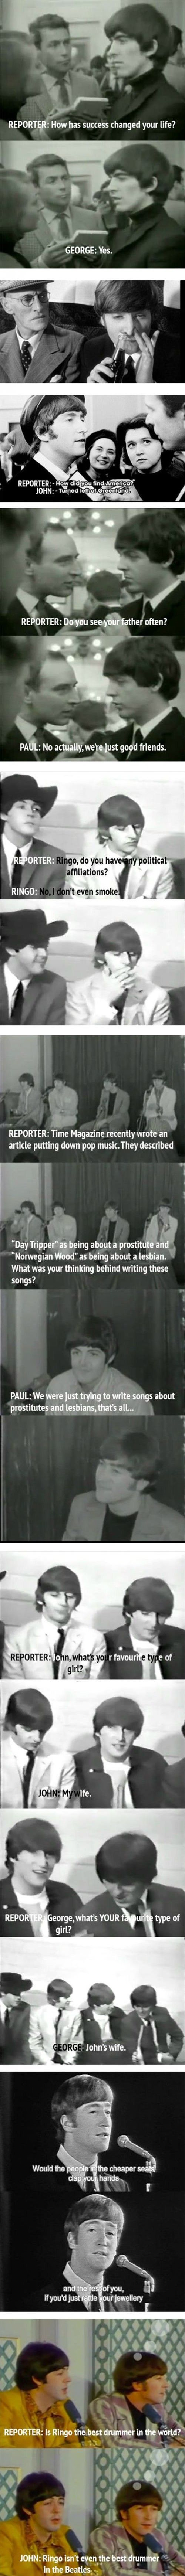 so apparently The Beatles were HILARIOUS --- I think people forget that Sir Paul will make appearances on SNL skits when he's the musical guest and he's hilarious! XD